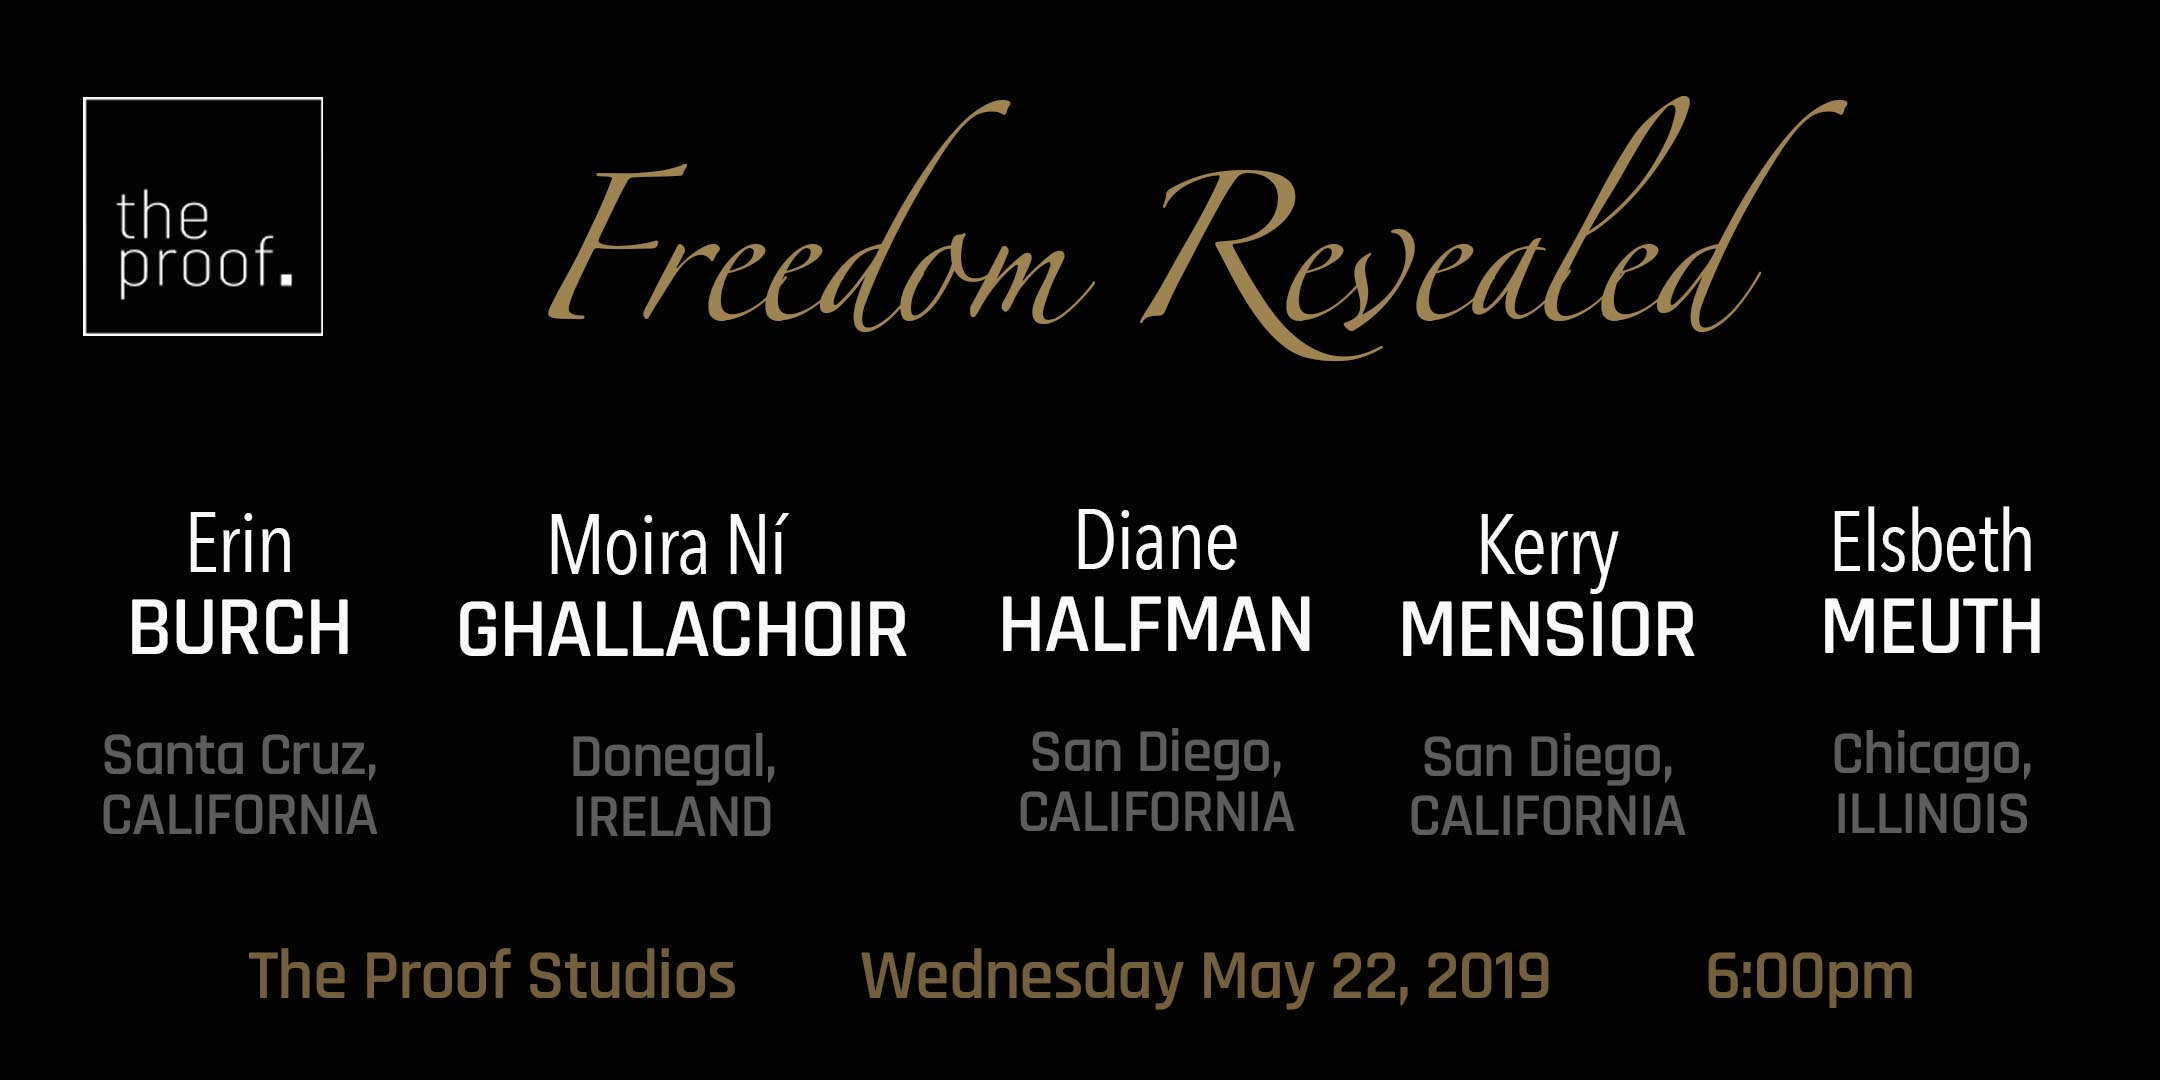 May 22, 2019 - Freedom RevealedFrom the San Diego streets of undercover prostitution vice patrol to the downtown Chicago underground of advanced tantric exploration, this line-up of speakers will encourage you to reflect on your own self expression and leave you inspired to live your best life.